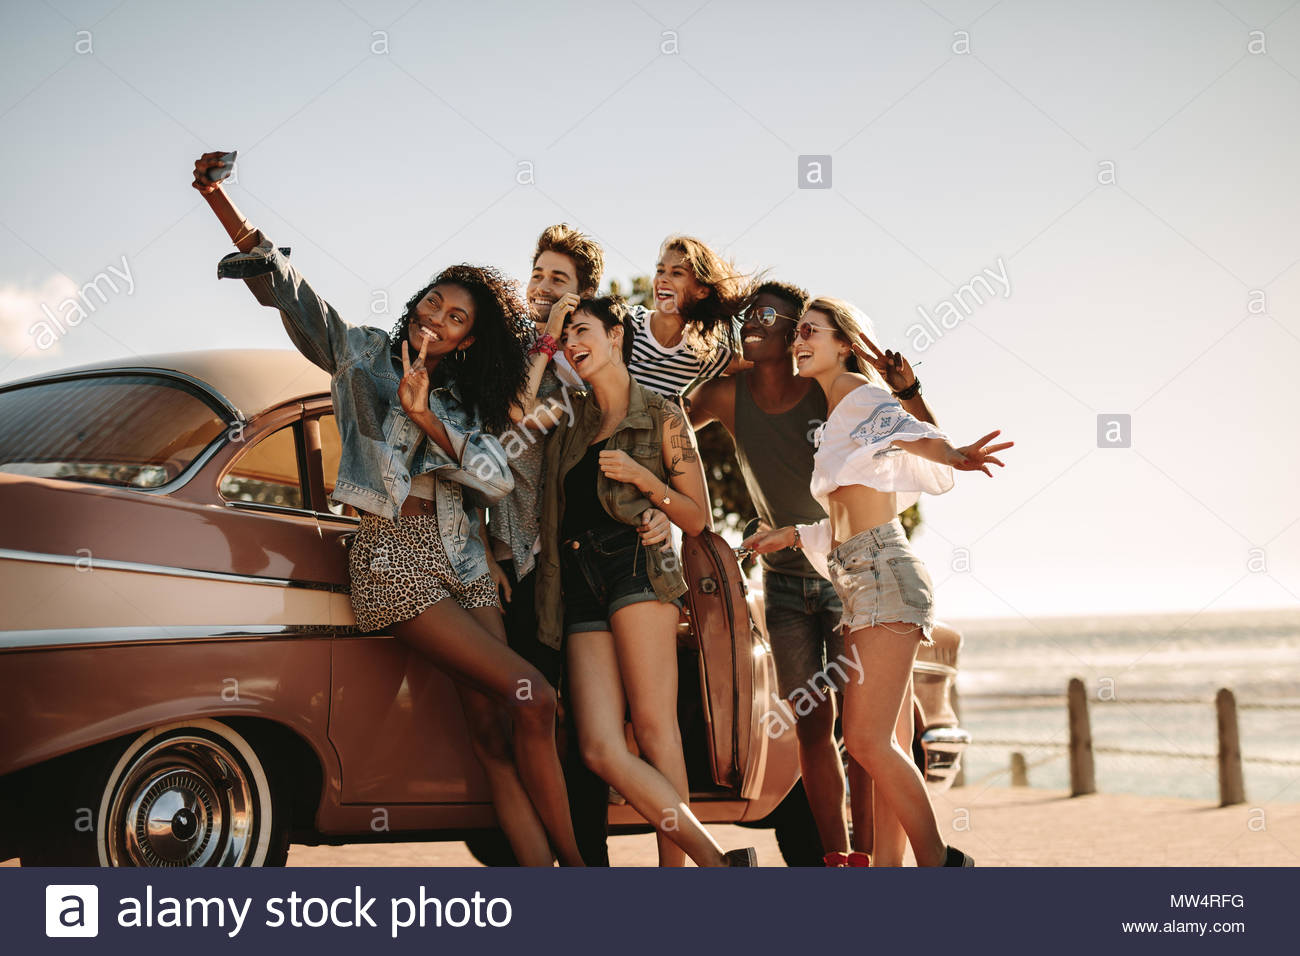 Diverse friends on road trip taking selfie with mobile phone. Group of men and women taking self portrait outdoors by the car. - Stock Image